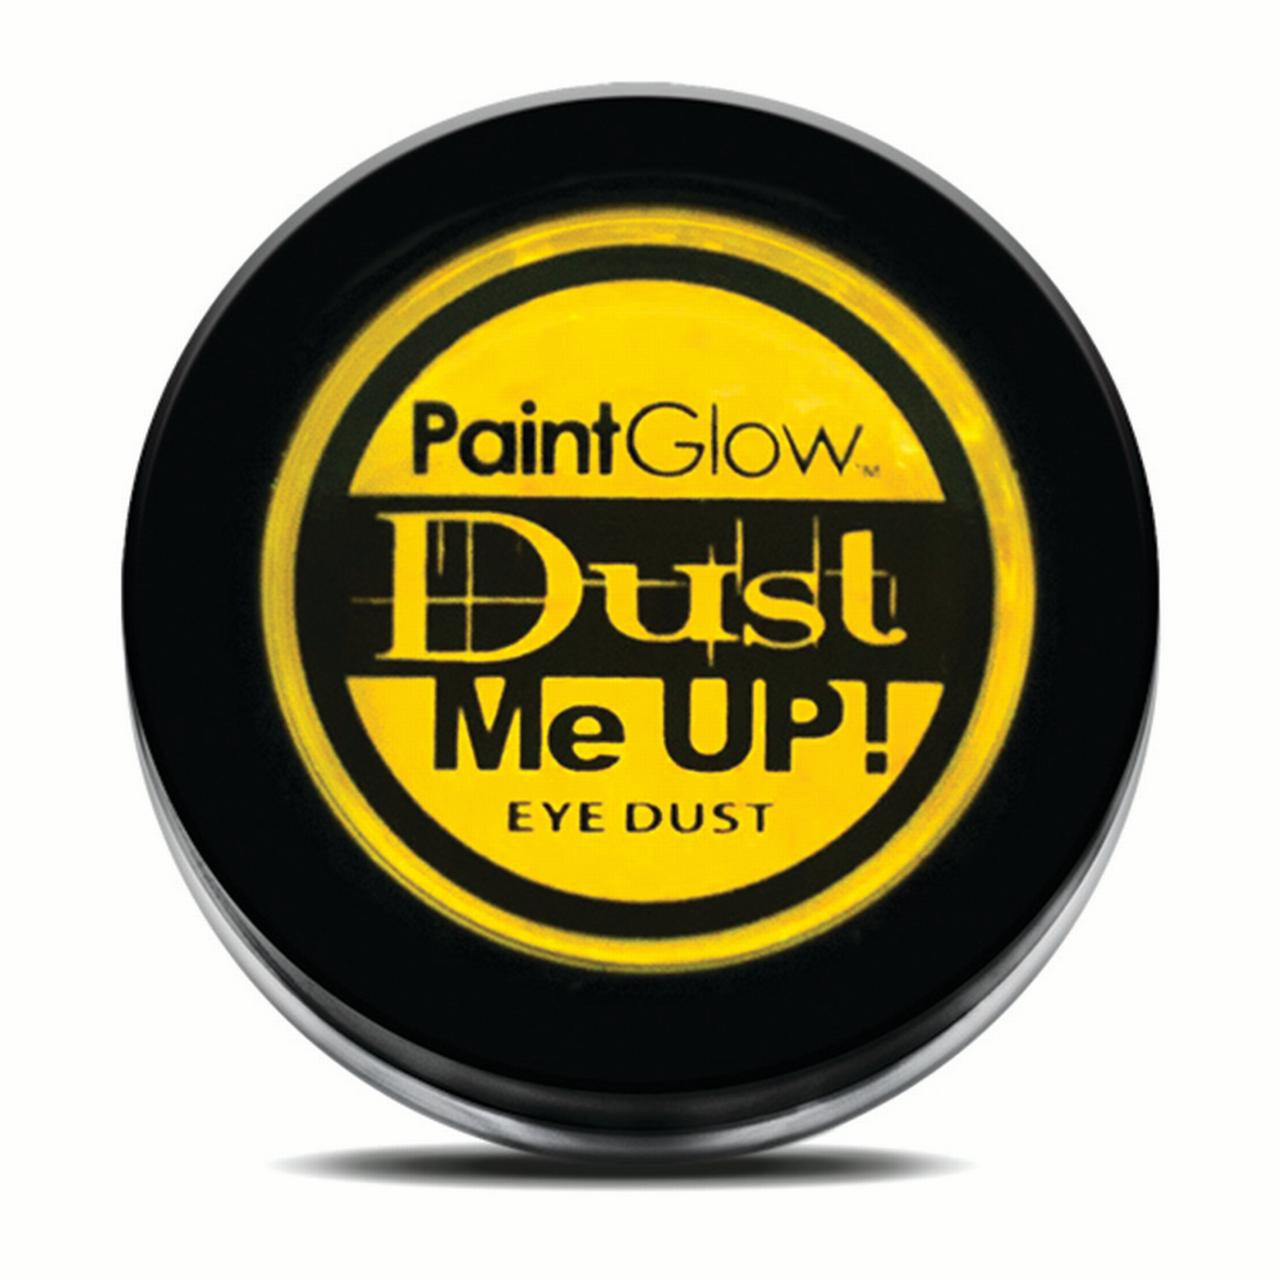 PaintGlow Dust Me Up Neon Glow UV Reactive 5g Eye Dust, Yellow